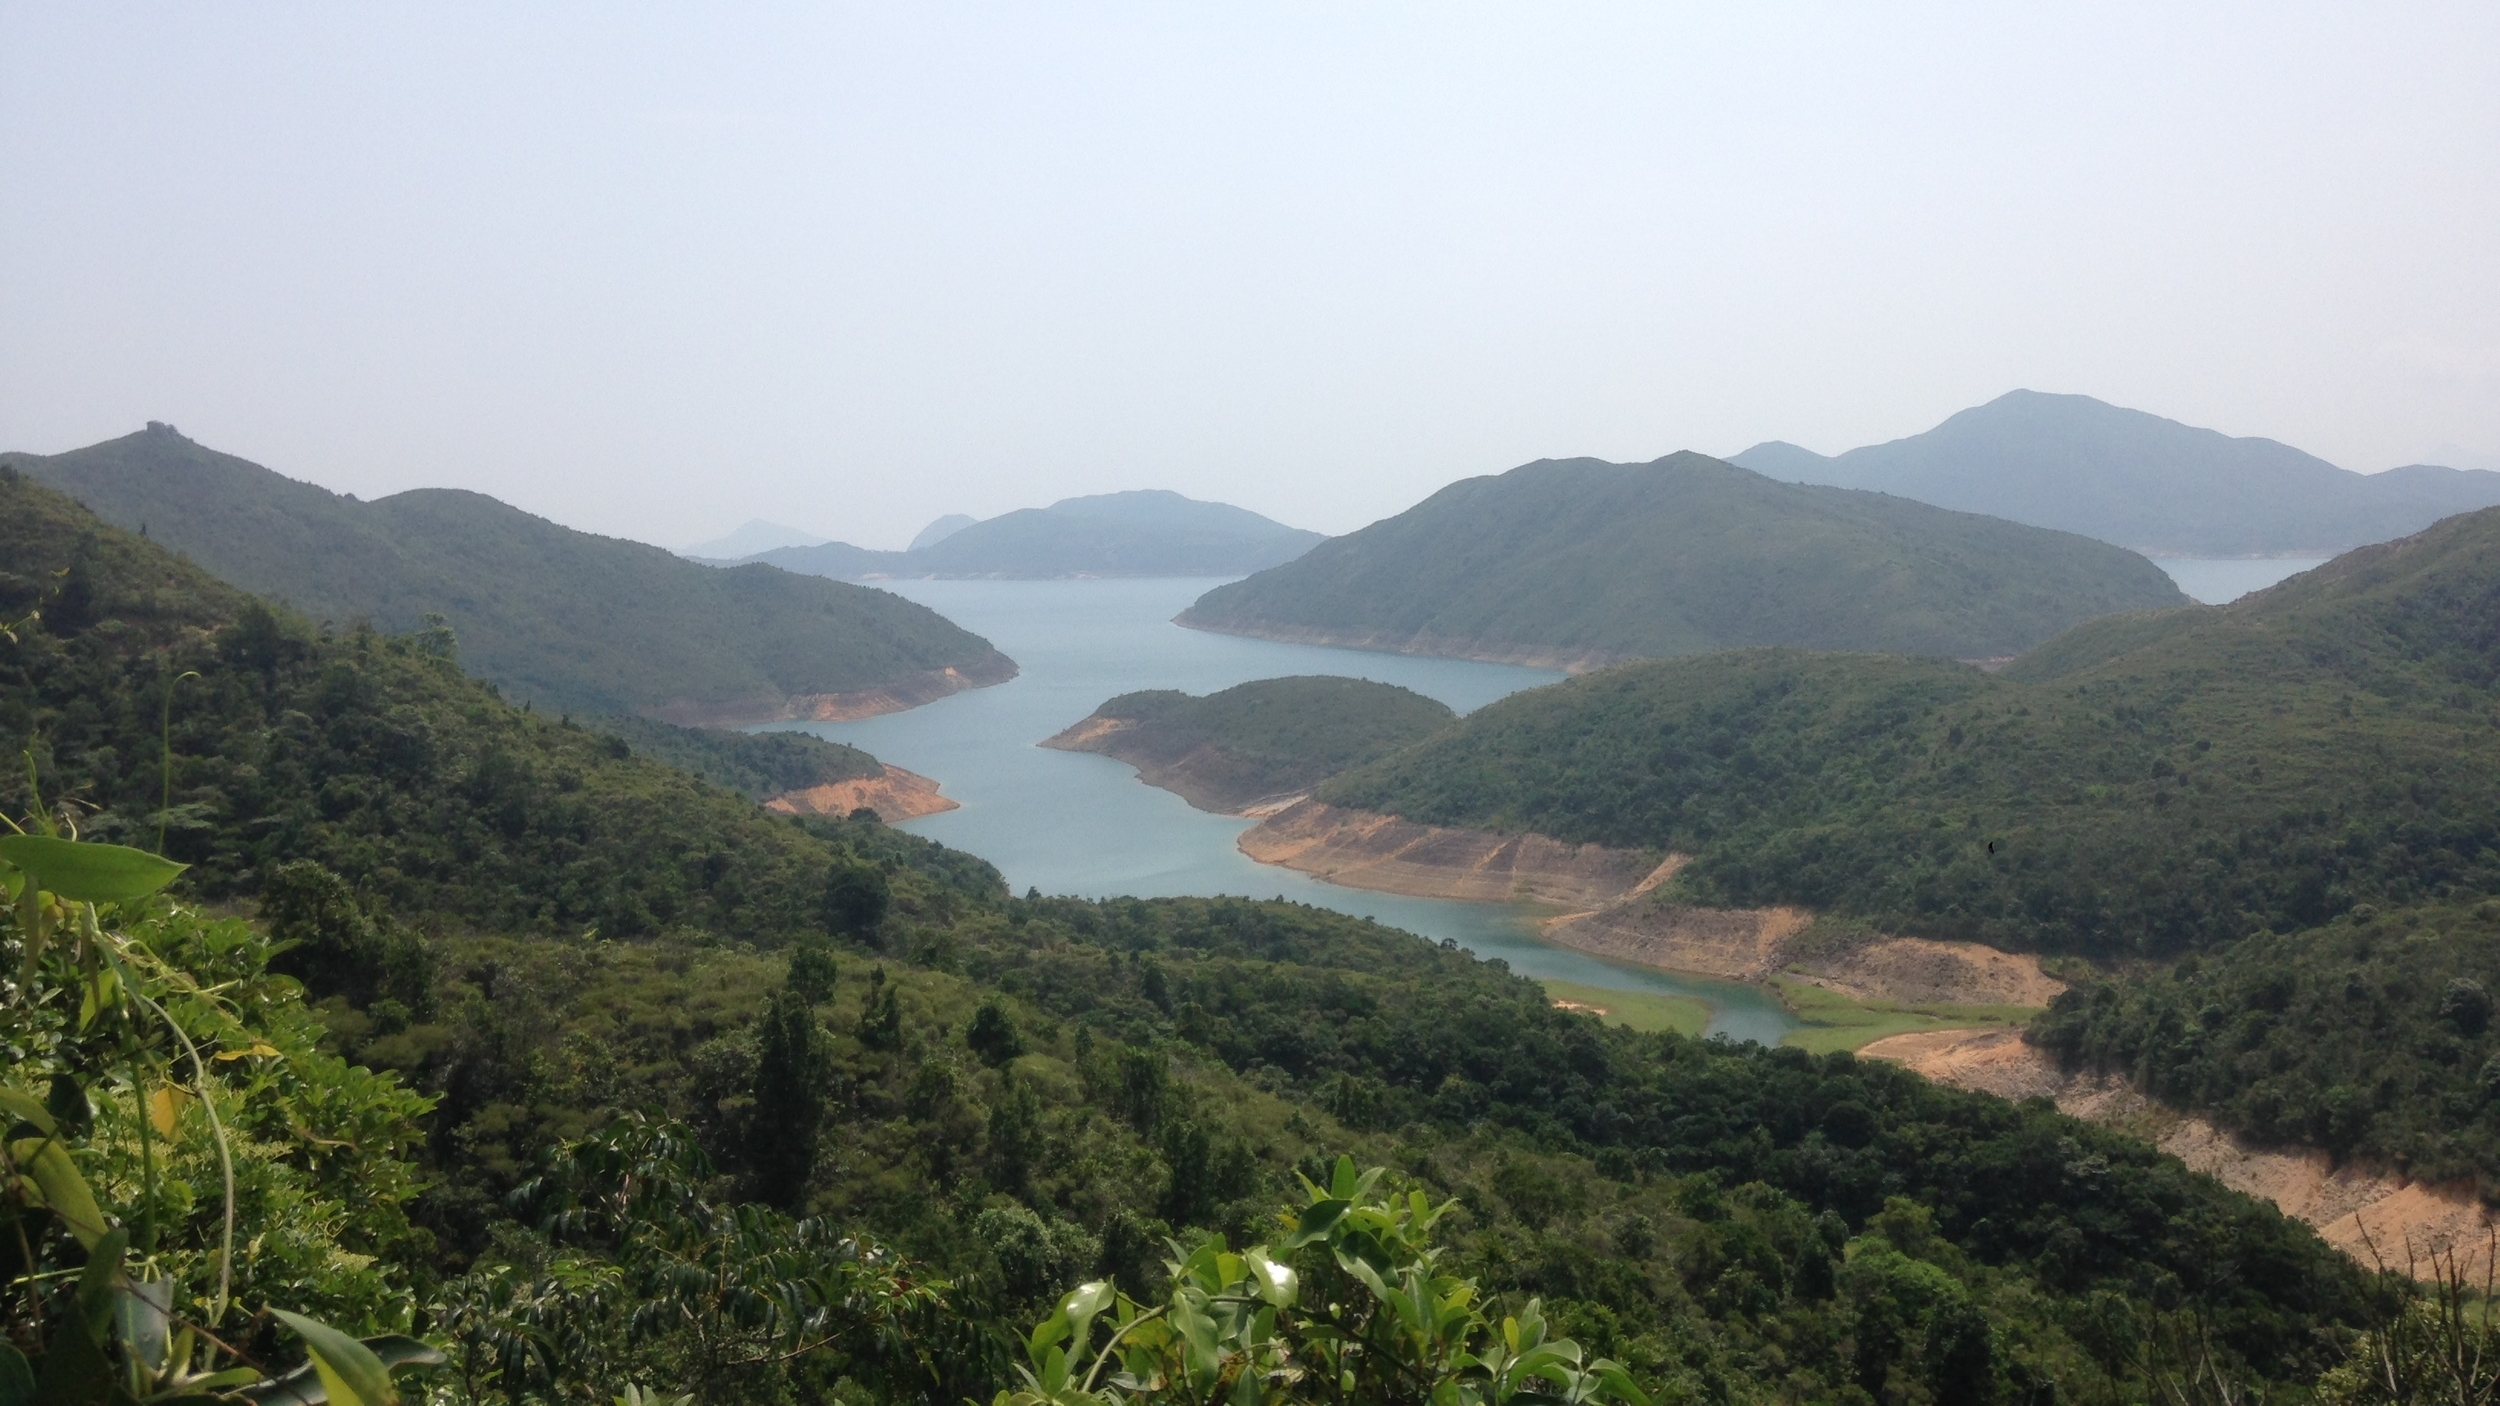 The view hiking to Sai Wan